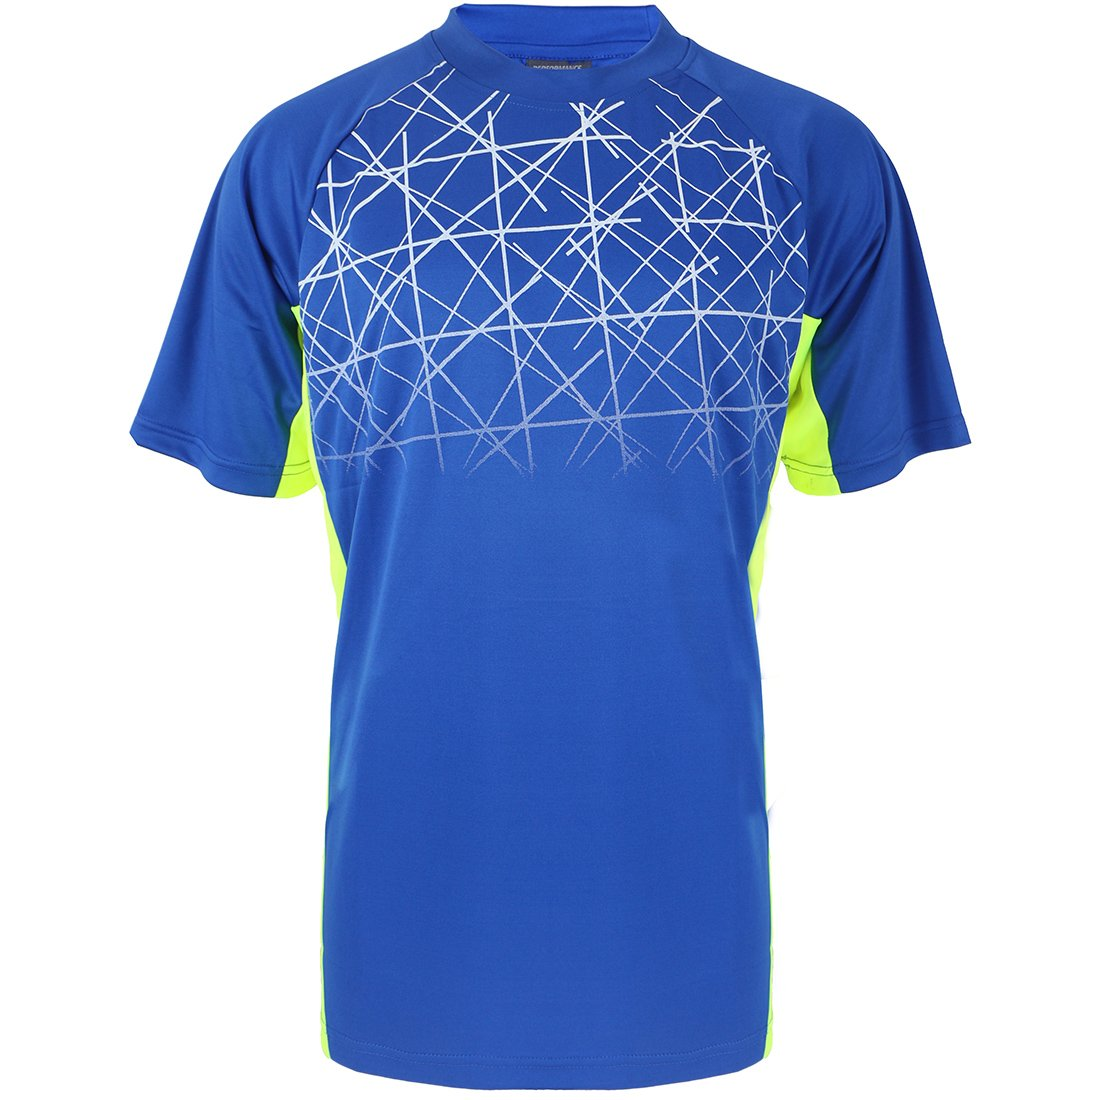 Gary Com Summer Sports T Shirts for Men Quick Dry Short Sleeve Top Athletic Crew O Neck Casual Tee Active Outerwear